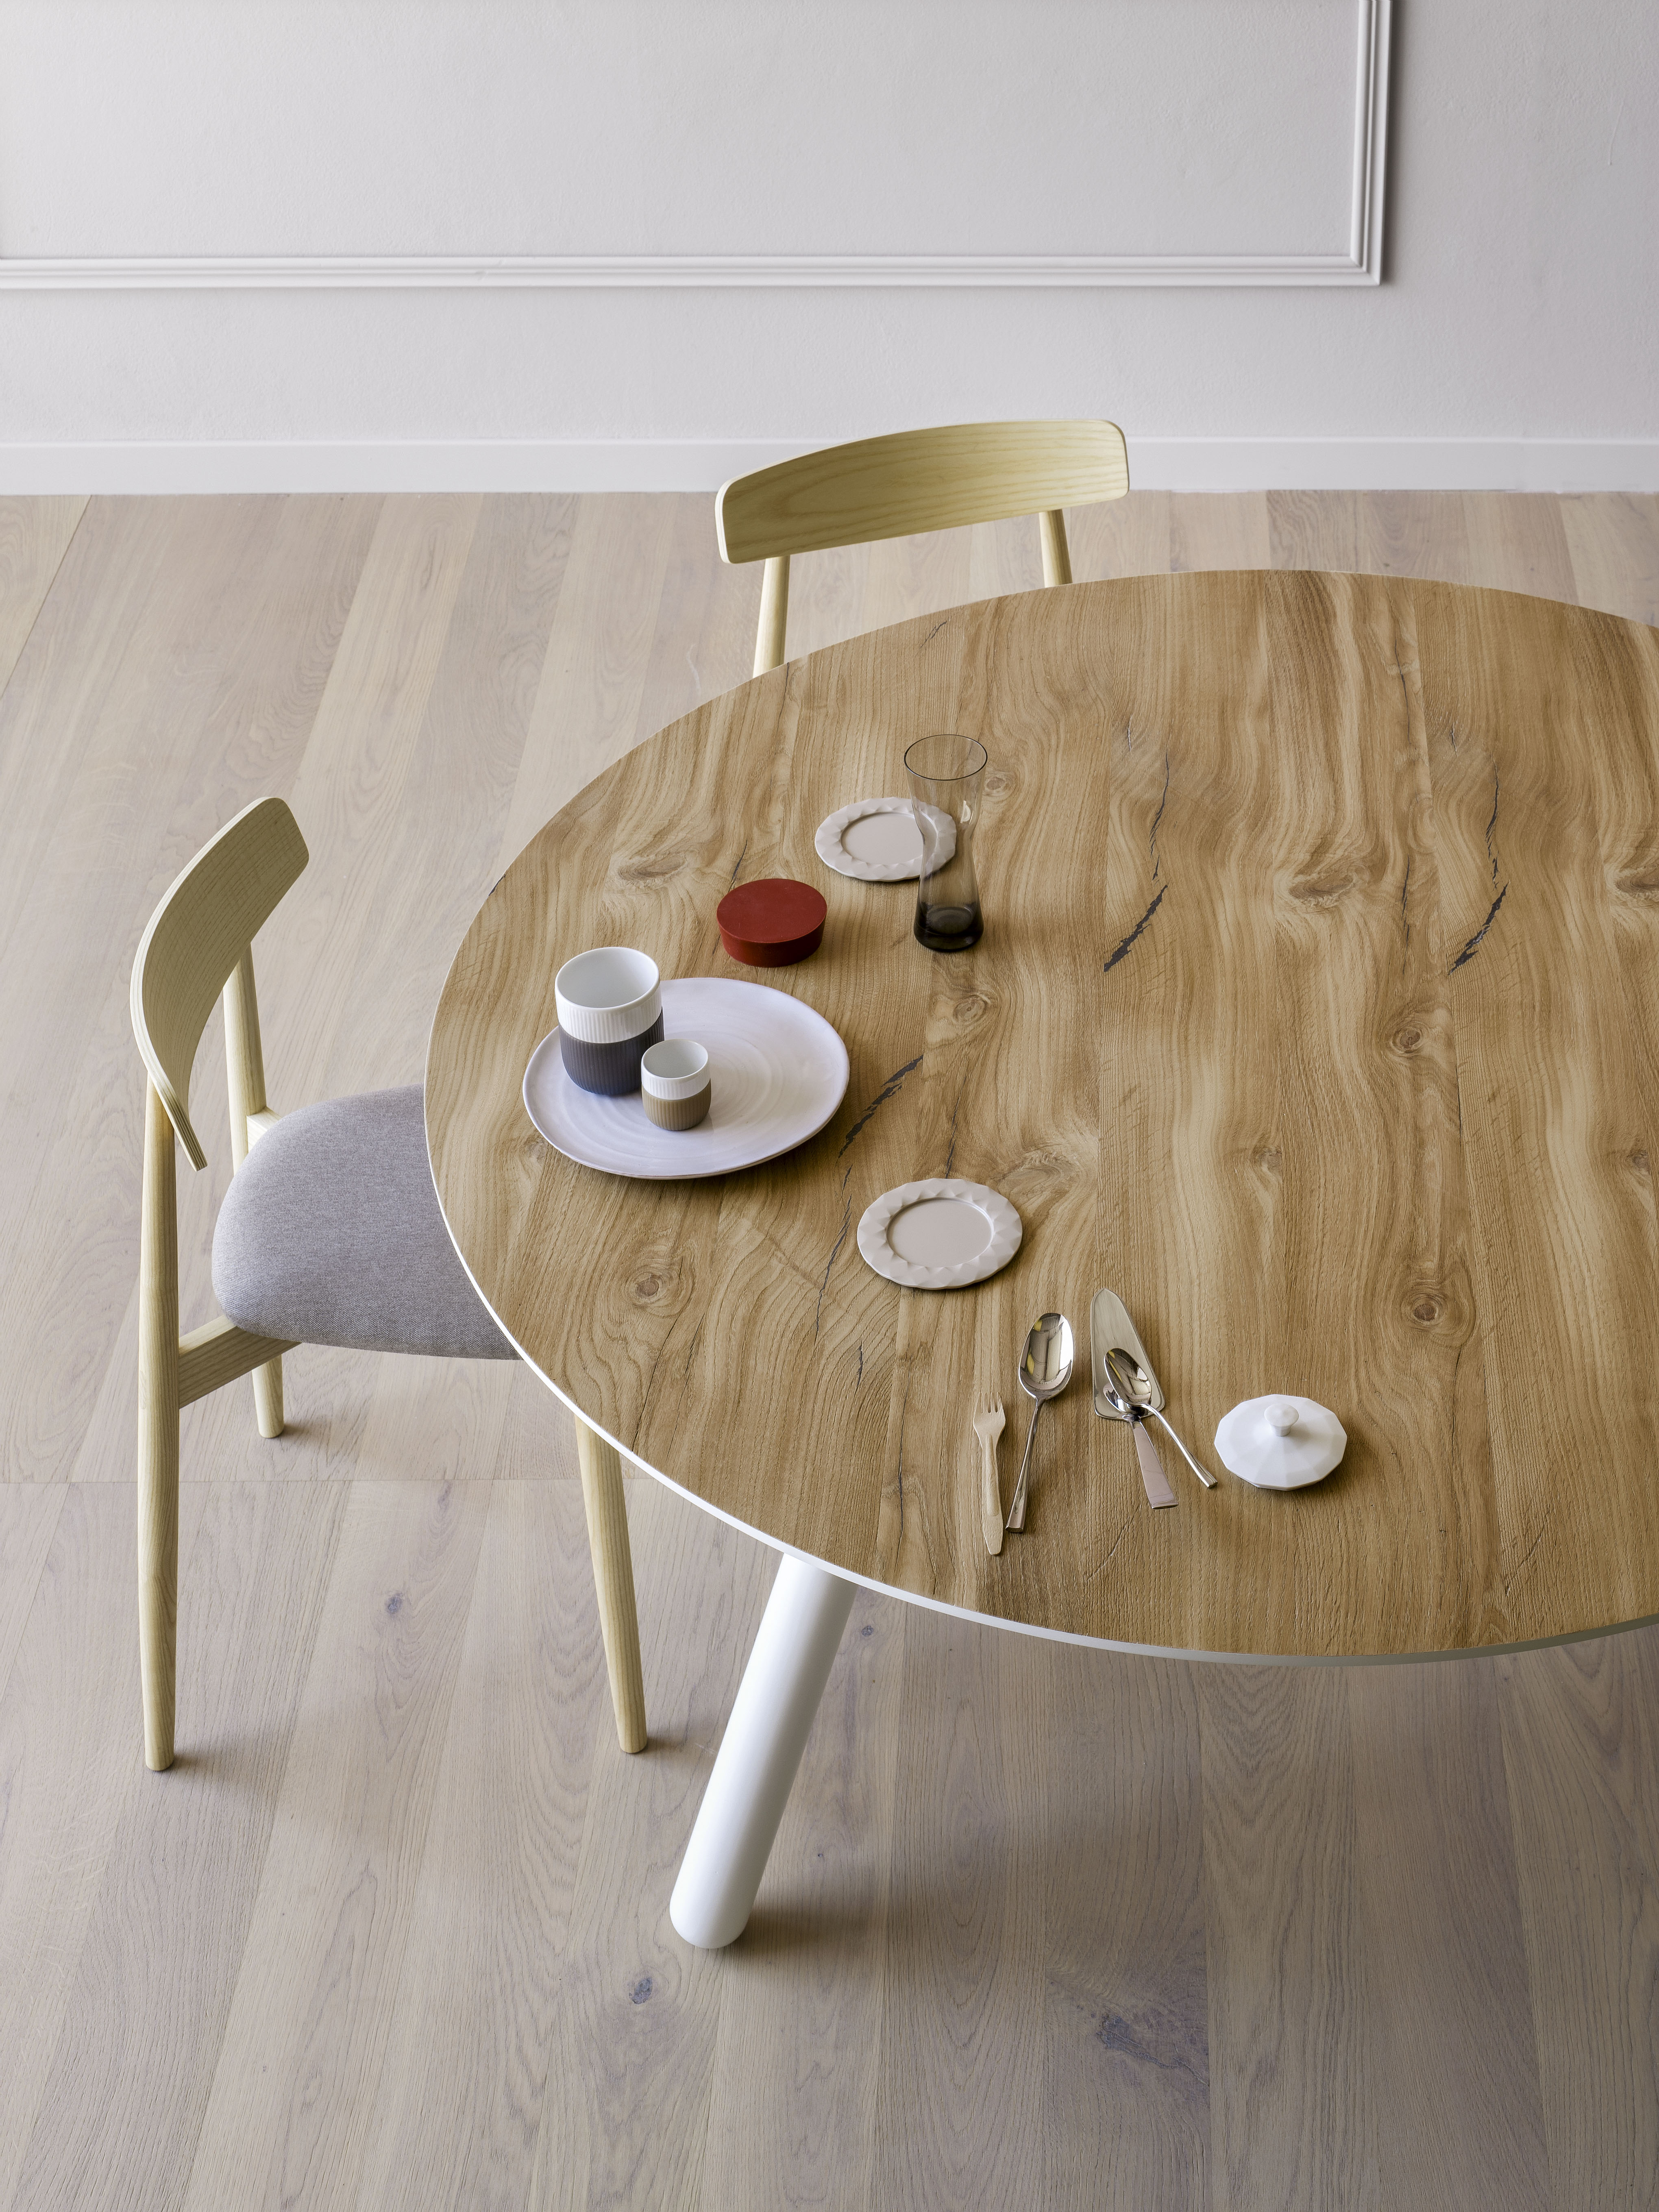 Pixie Round Wooden Table - Pixie is available with oval, round, or rectangular top lacquered white, black or inflamed oak, black ash, vintage oak, heat-treated oak and Canaletto walnut veneer. The legs are lacquered in the same finish of the top or realised in natural ash, grey aniline or black aniline. A range of materials including ceramic and marble, colours and sizes are available in a number of combinations.   Prices may vary. Please enquire for full details. | Matter of Stuff